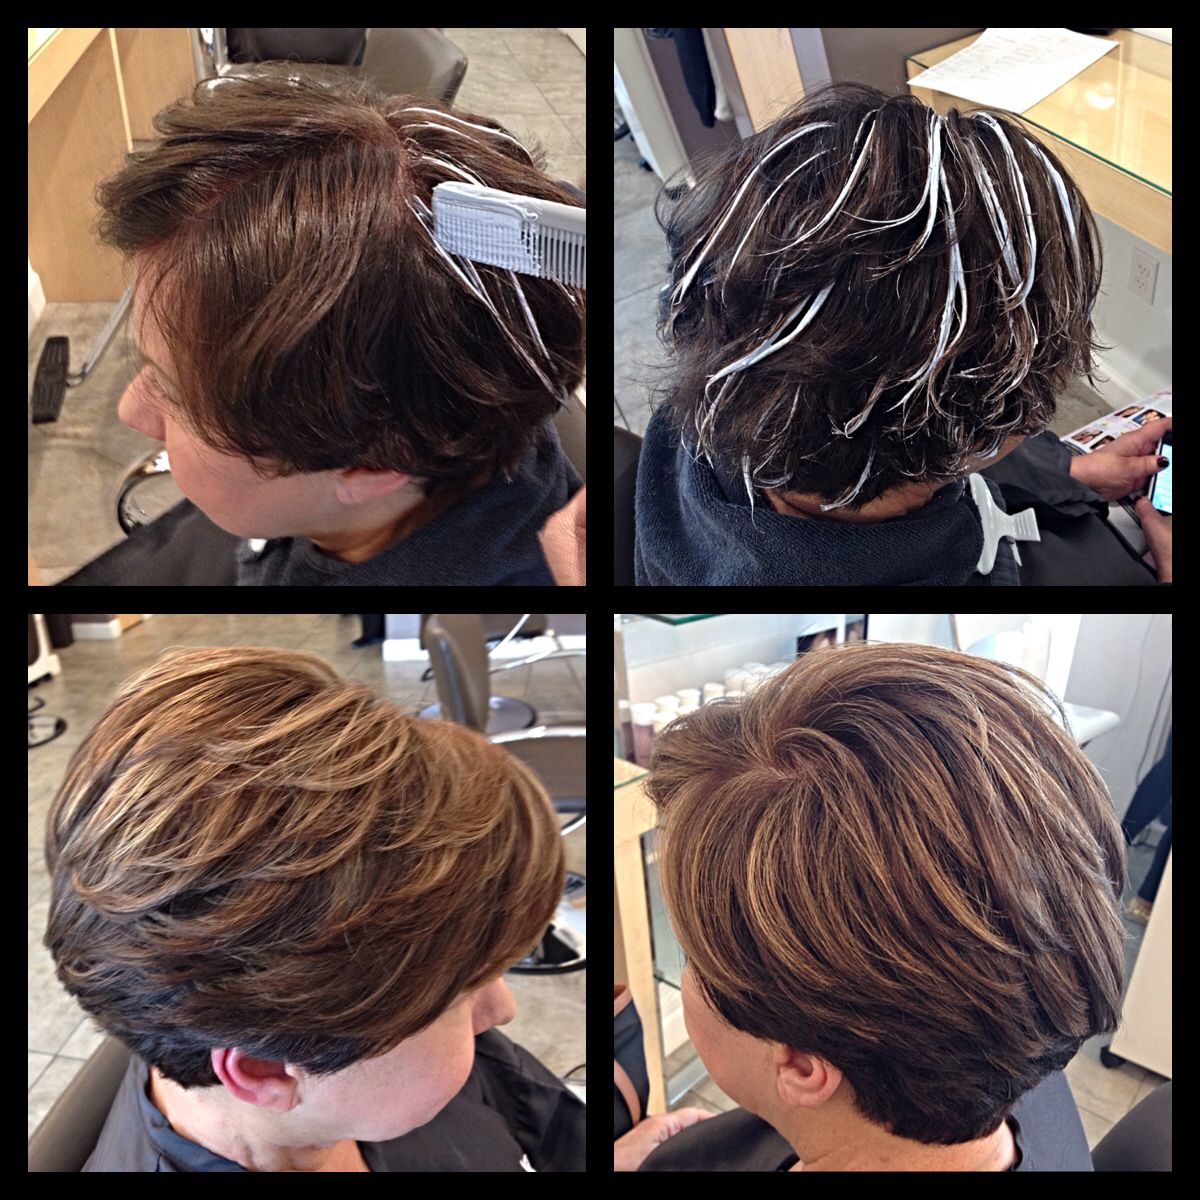 Comb Balayage Techniques For A Very Natural Result On Short Hair Caramel Highlights On A Medium Br Short Hair Highlights Short Hair Styles Short Brunette Hair